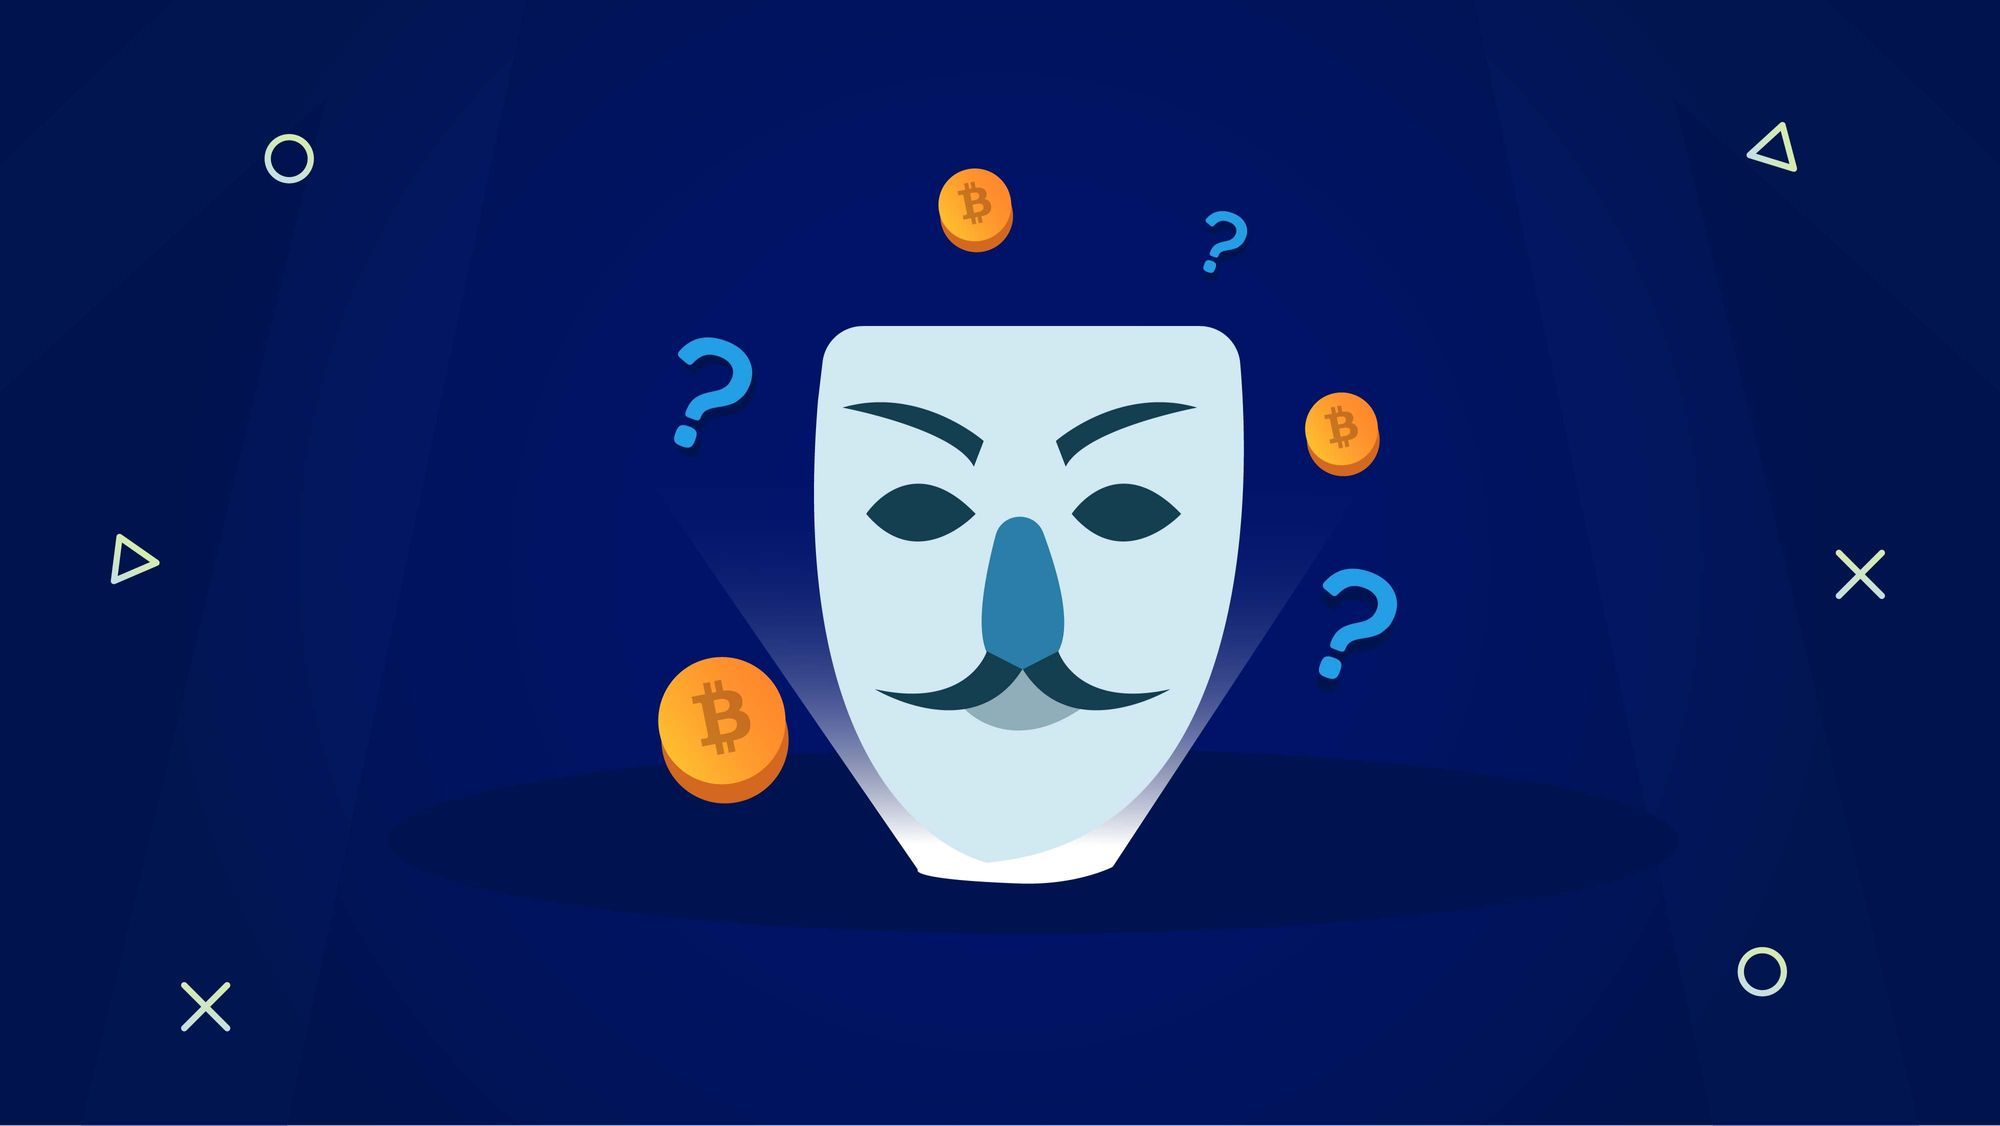 How to Use Bitcoin Anonymously?